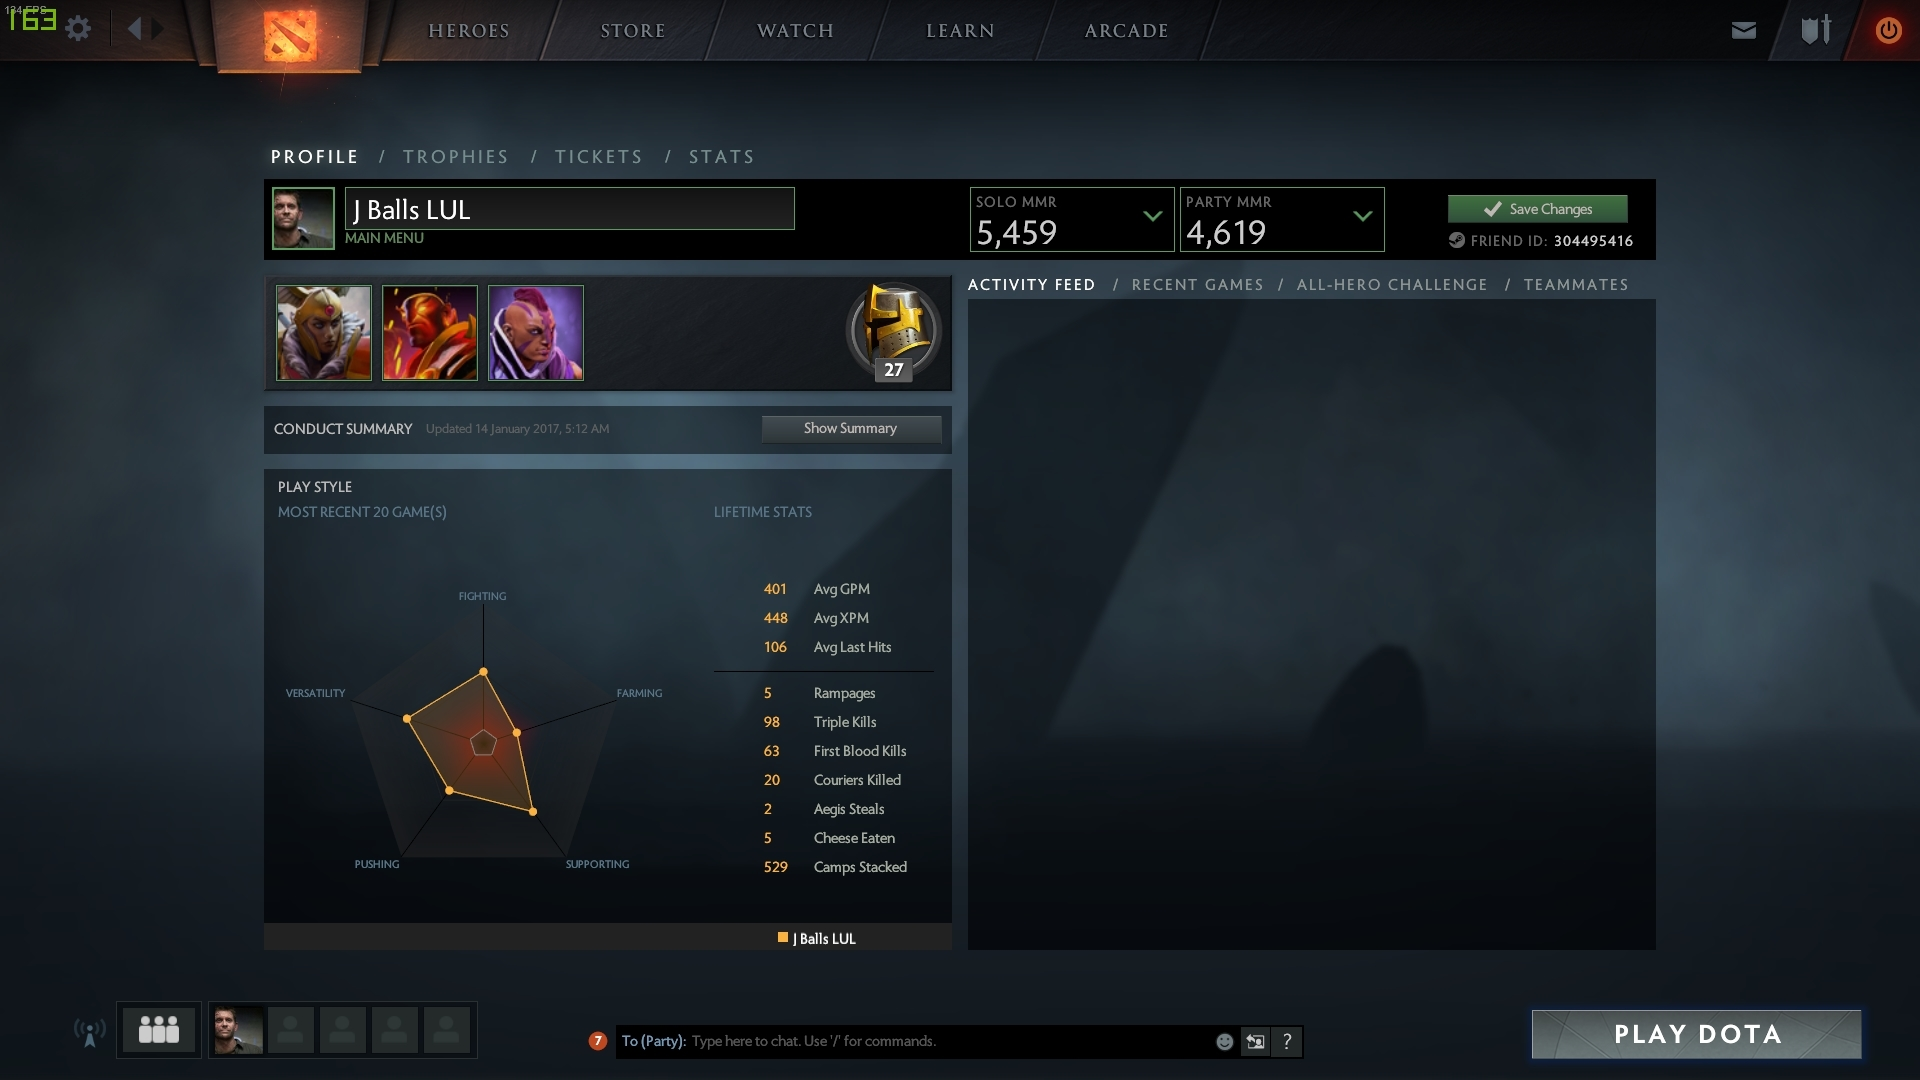 sold dota 2 5 5k solo 4600 party playerup accounts marketplace